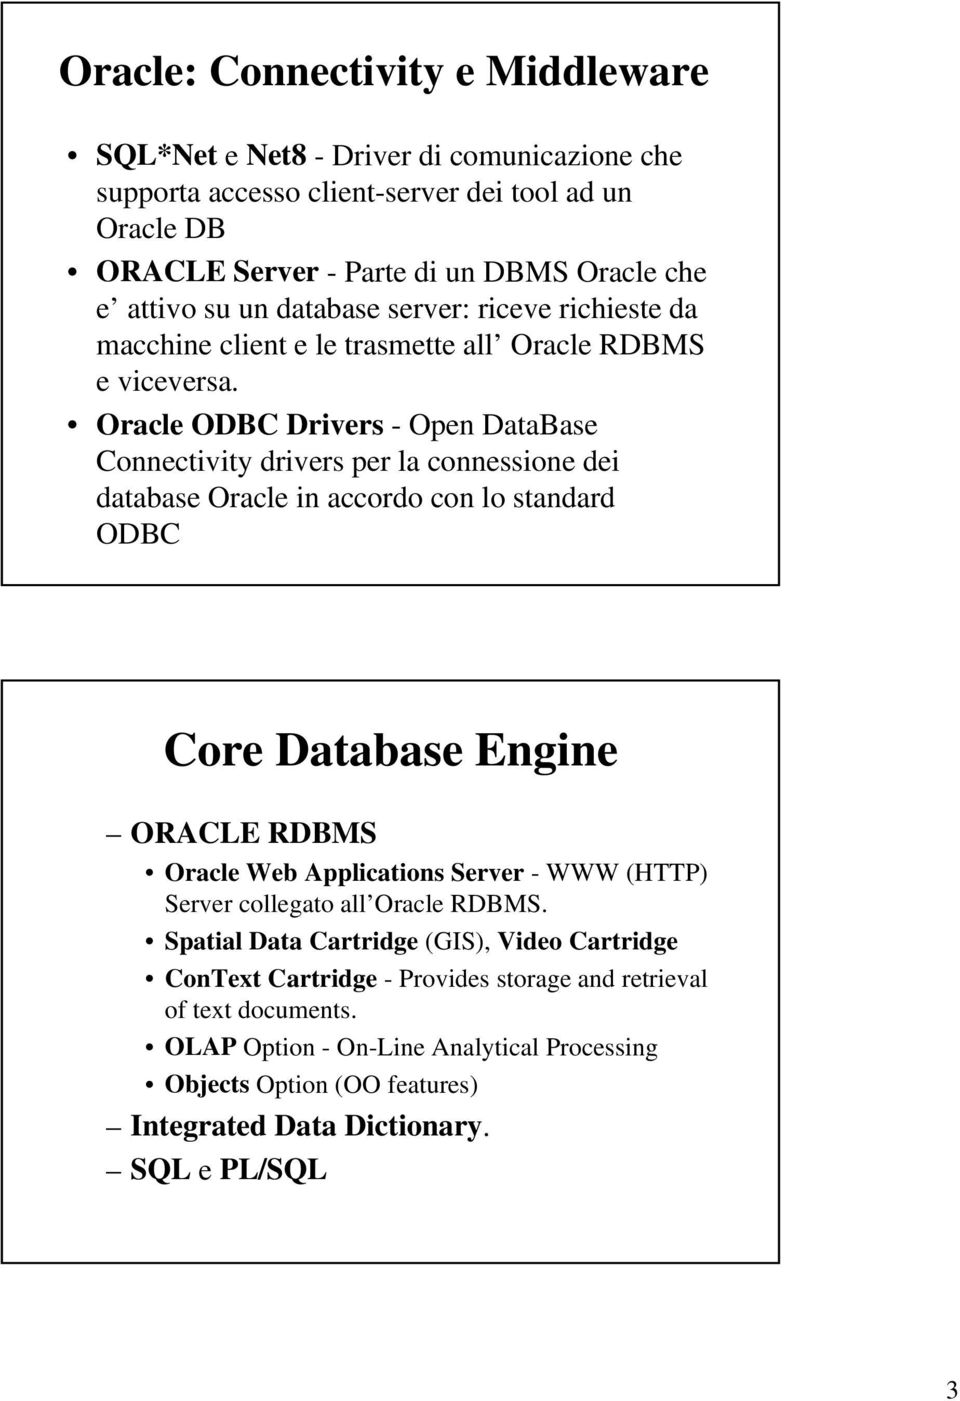 Oracle ODBC Drivers - Open DataBase Connectivity drivers per la connessione dei database Oracle in accordo con lo standard ODBC Core Database Engine ORACLE RDBMS Oracle Web Applications